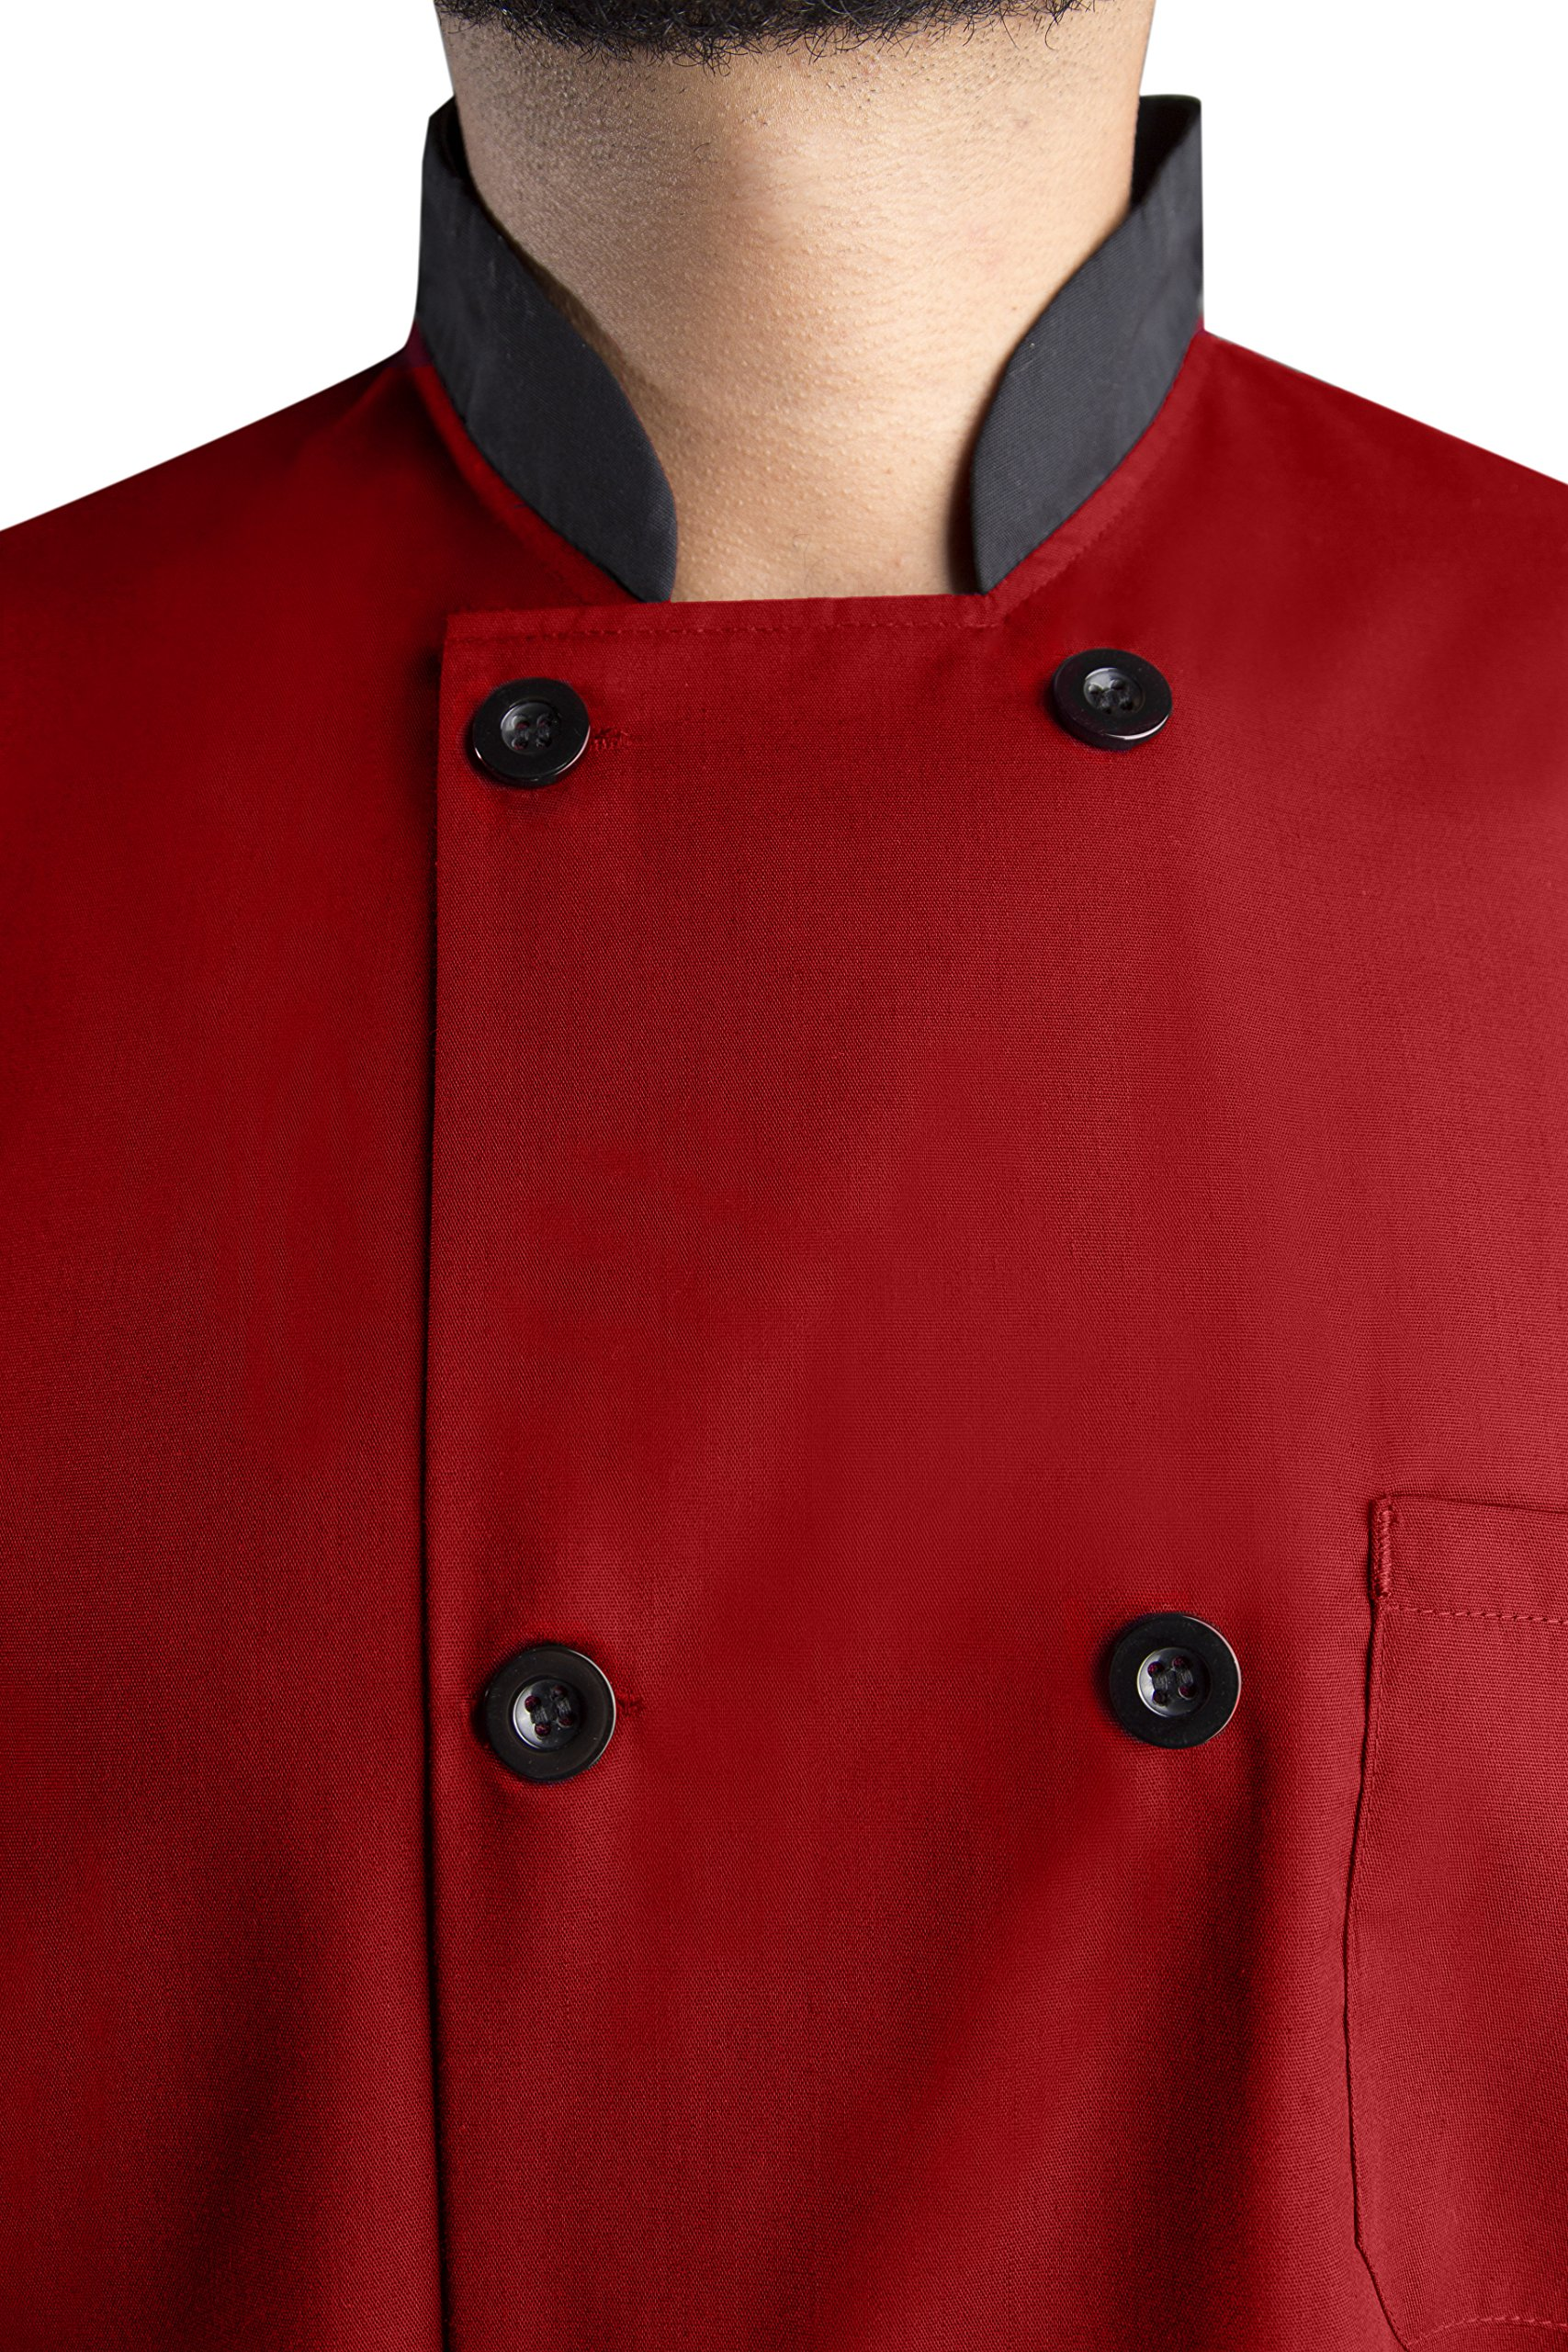 Happy Chef Lightweight Chef Coat, Medium, Red by Happy Chef